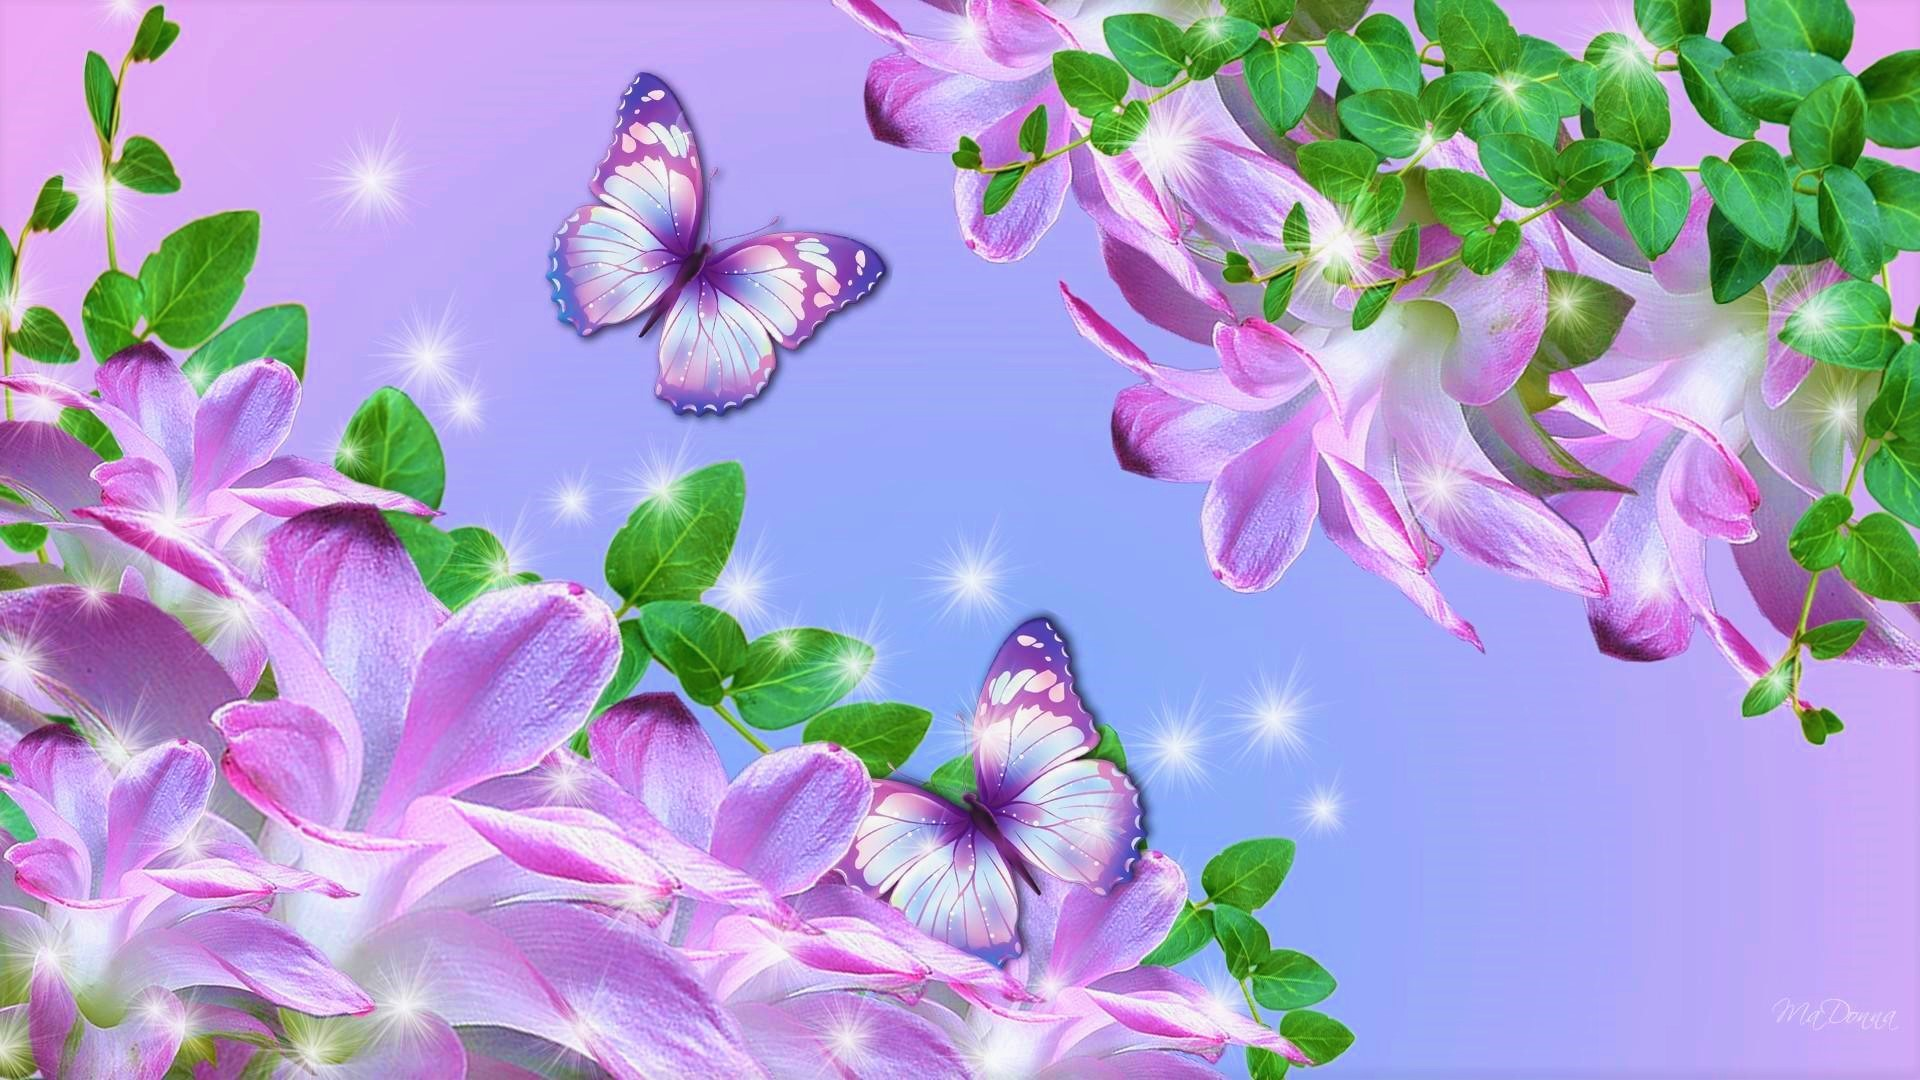 Flowers And Butterflies Hd Wallpaper Background Image 1920x1080